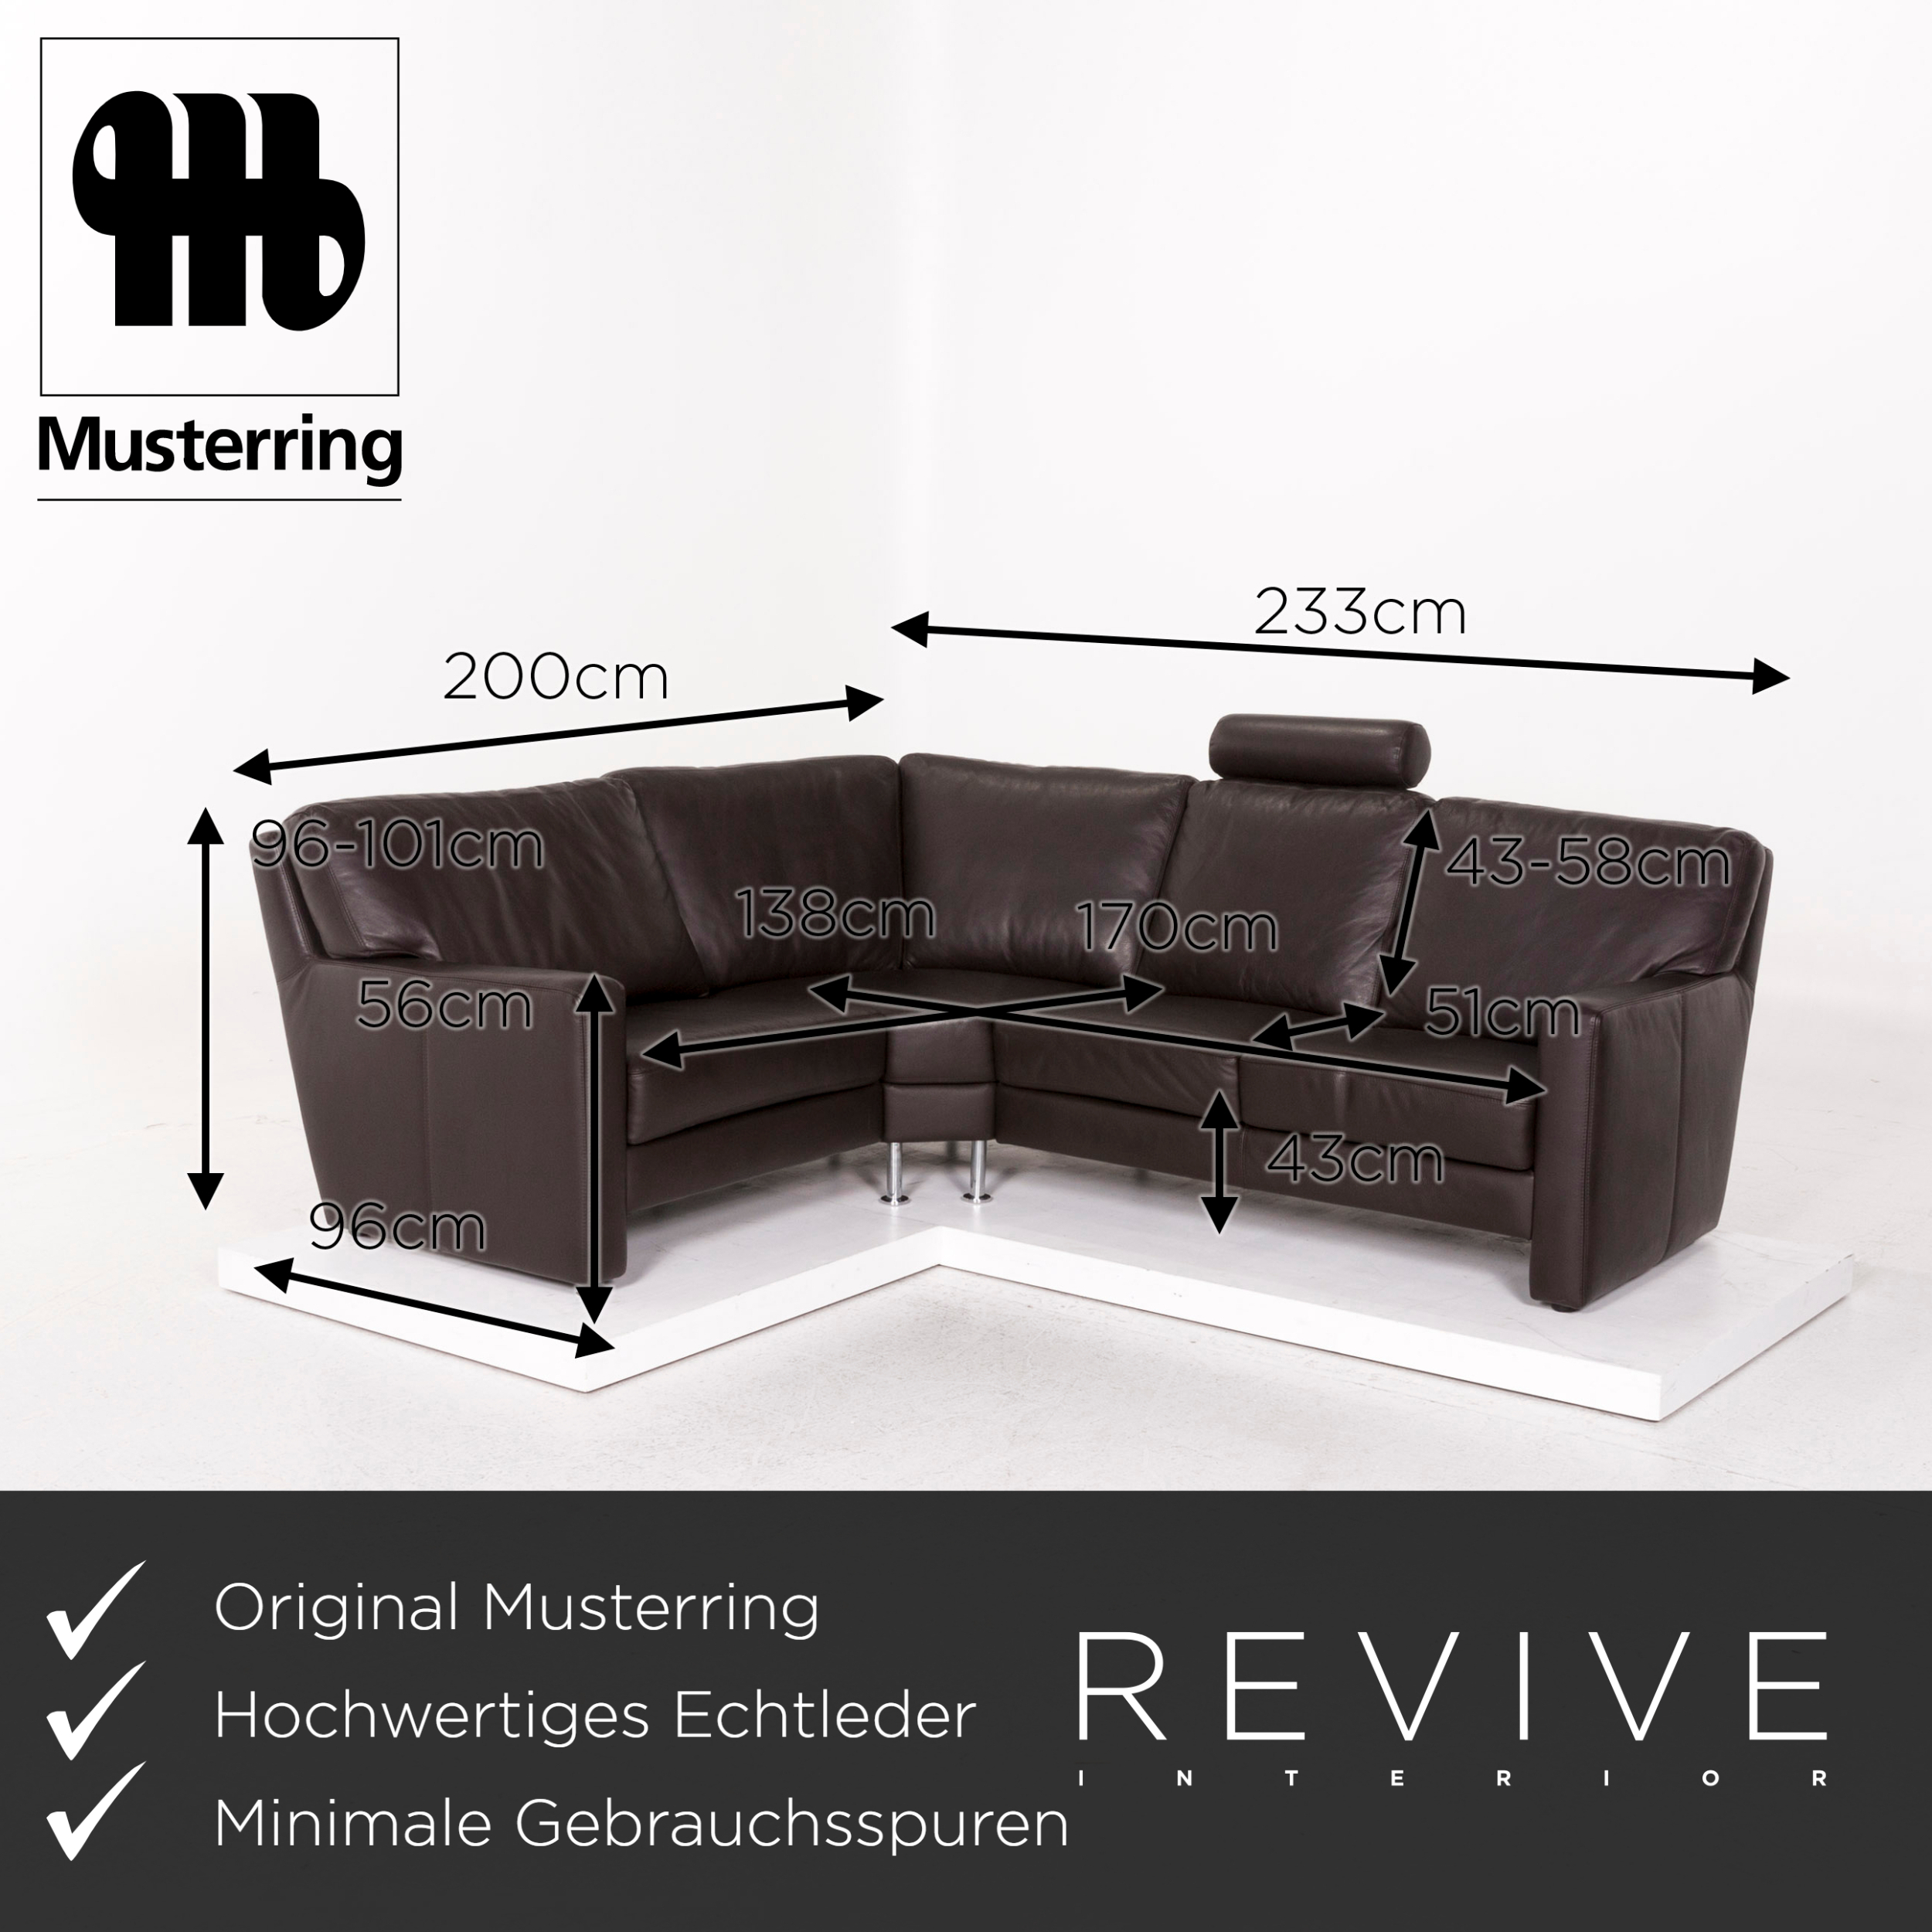 Musterring Ledersofa Musterring Leather Sofa Set Braun Dark Brown 1x Corner Sofa 1x Armchair Incl | Ebay